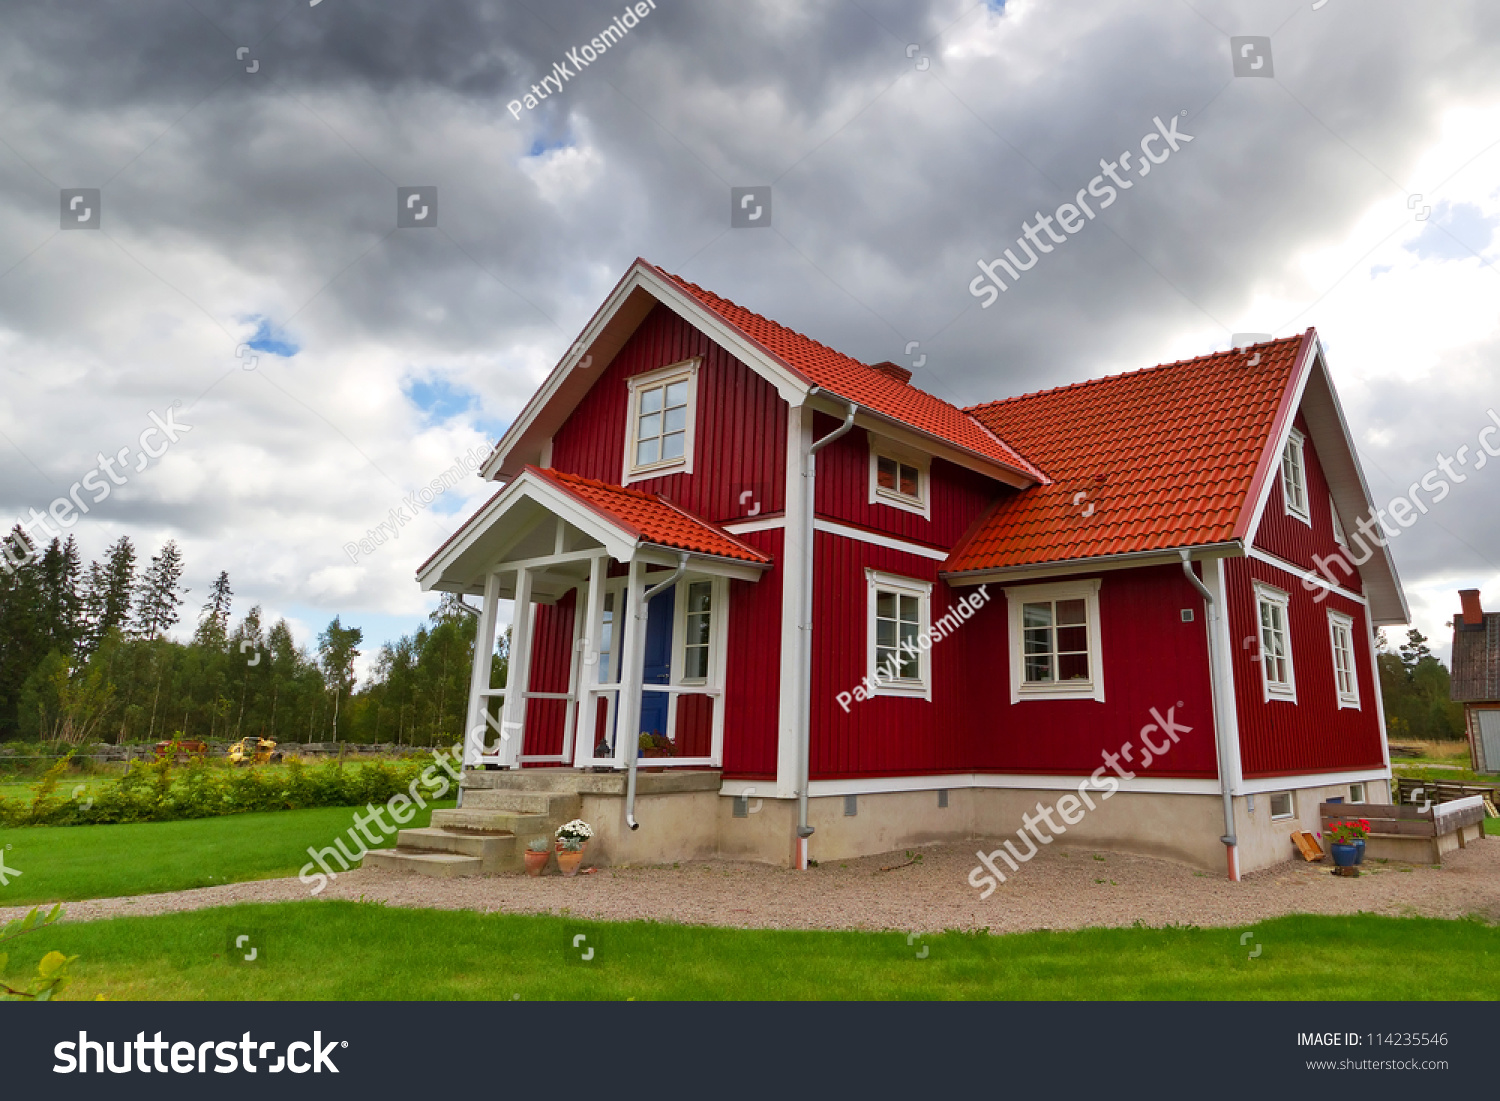 Image result for swedish houses